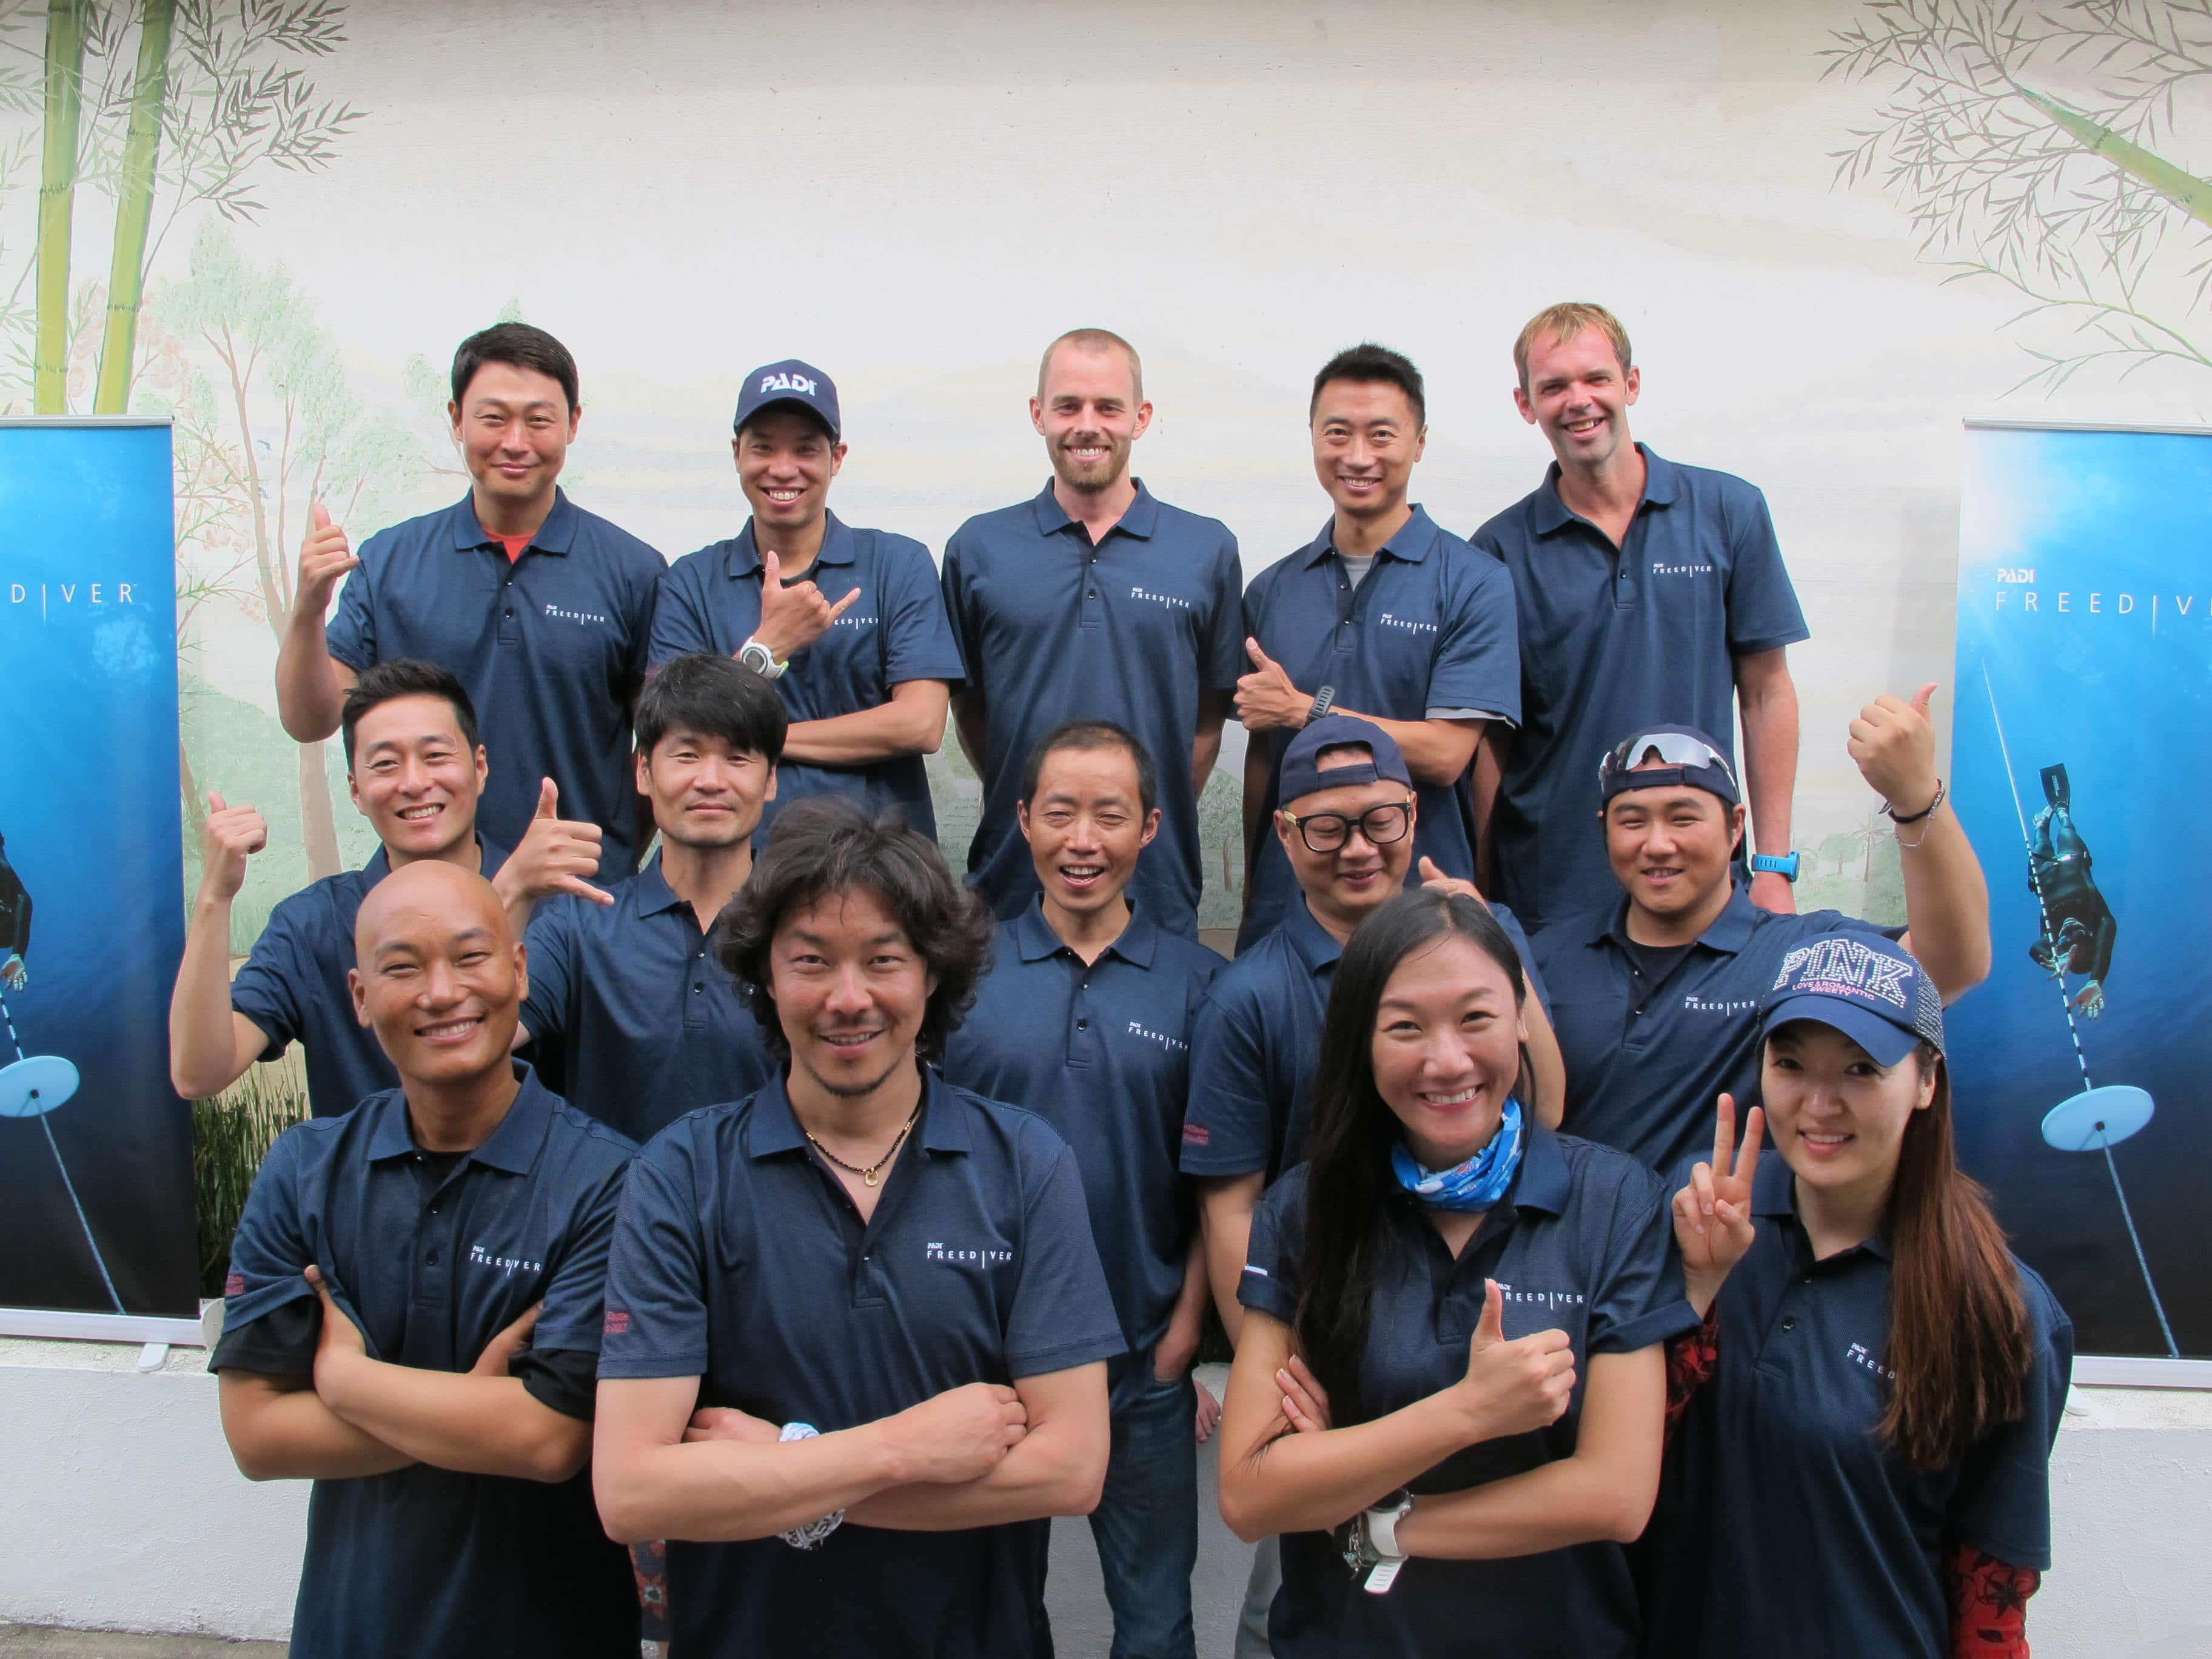 PADI Holds First-Ever Freediver Instructor Trainer Course In Asia